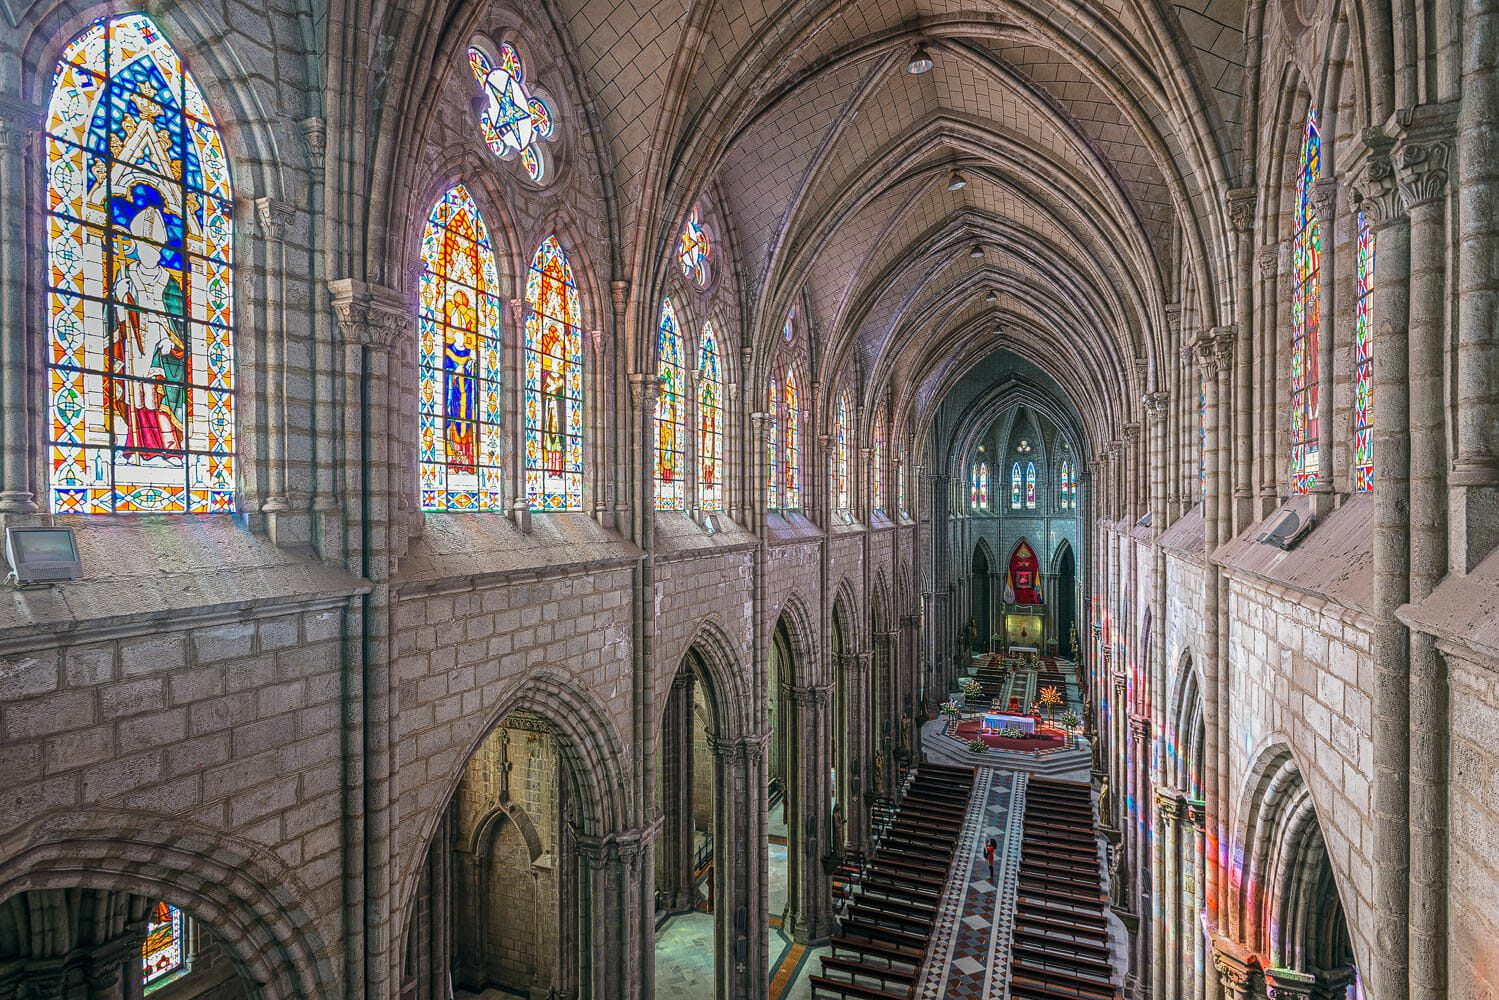 Basilica of Quito central nave view from above